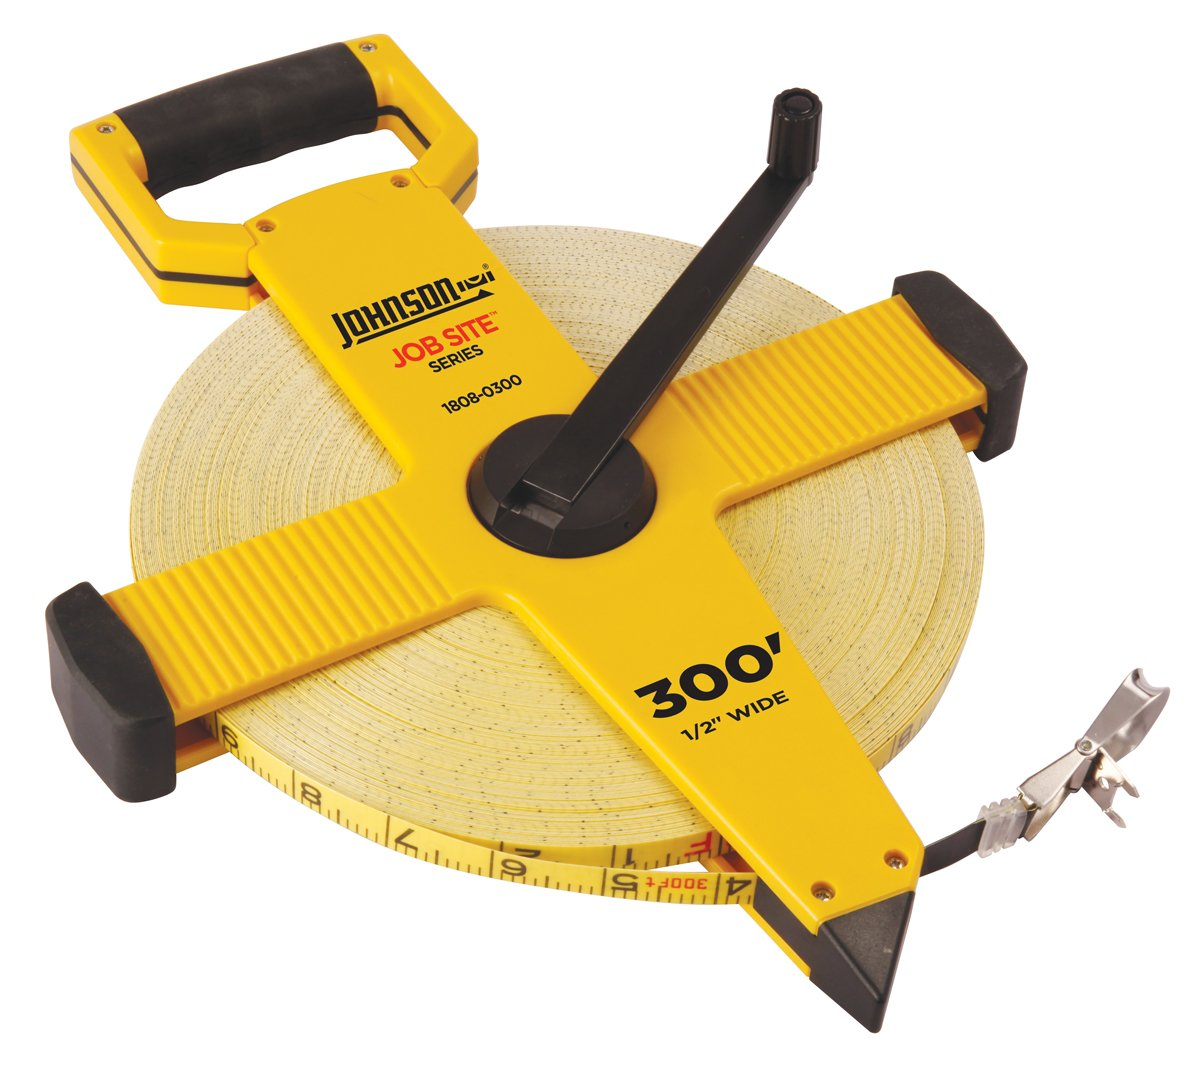 Johnson Level and Tool 1808-0300 300-Foot JobSite Open Reel Fiberglass Tape